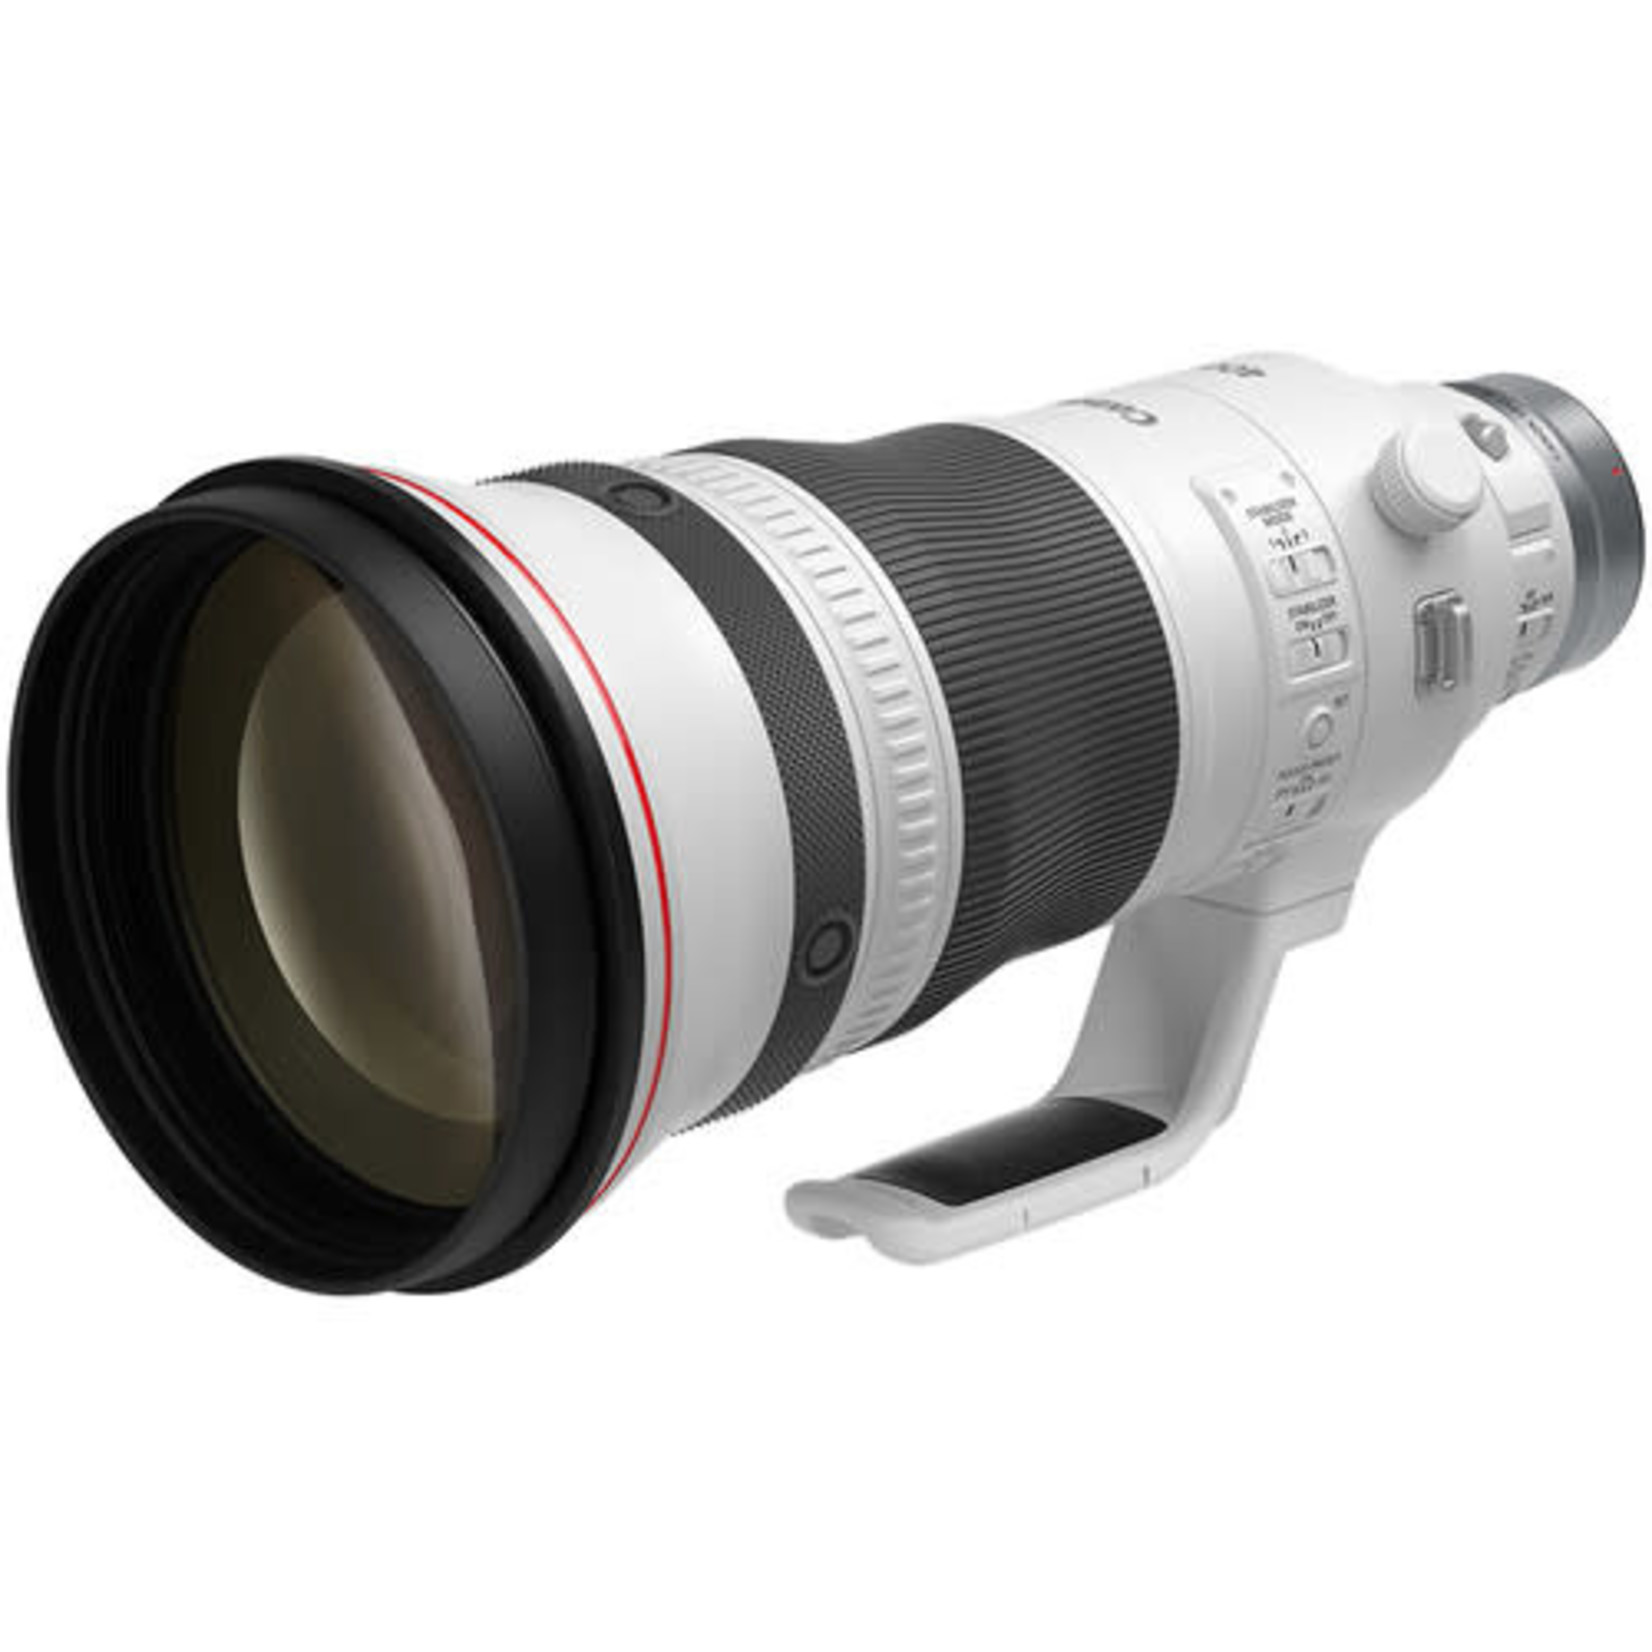 Canon Canon RF 400mm f/2.8L IS USM Lens